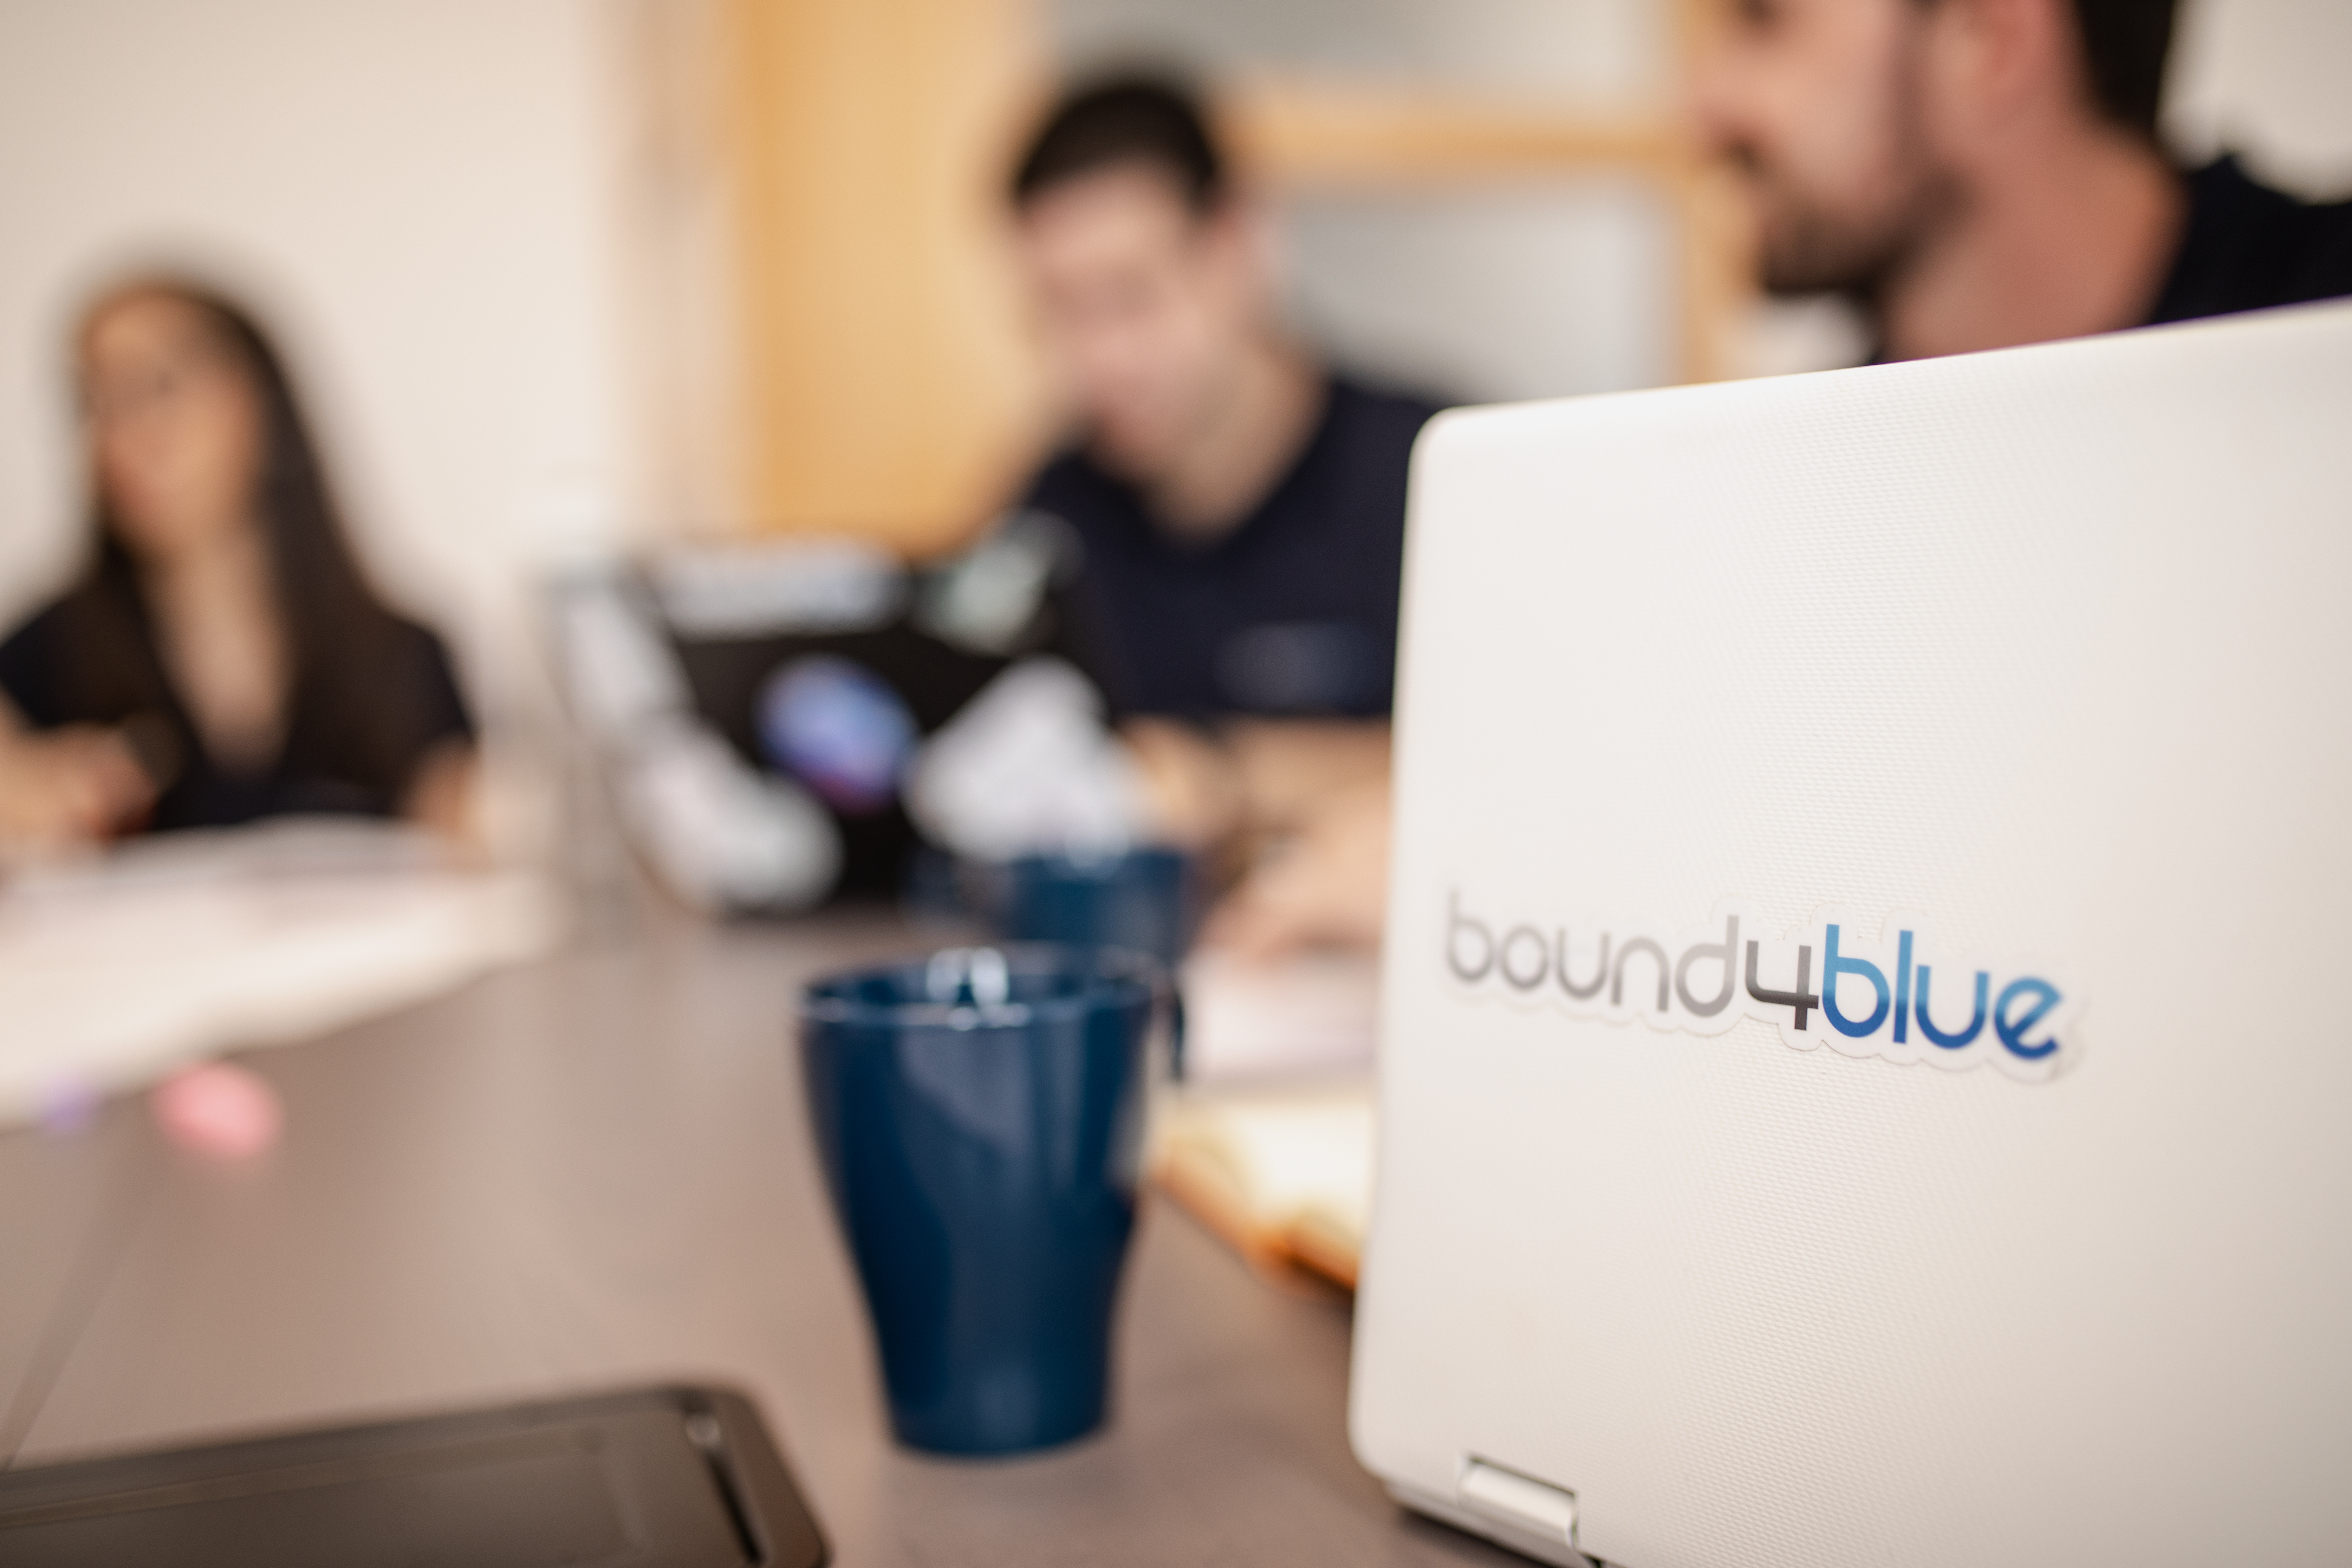 Bound4Blue - Fotos Lifestyle Business 13